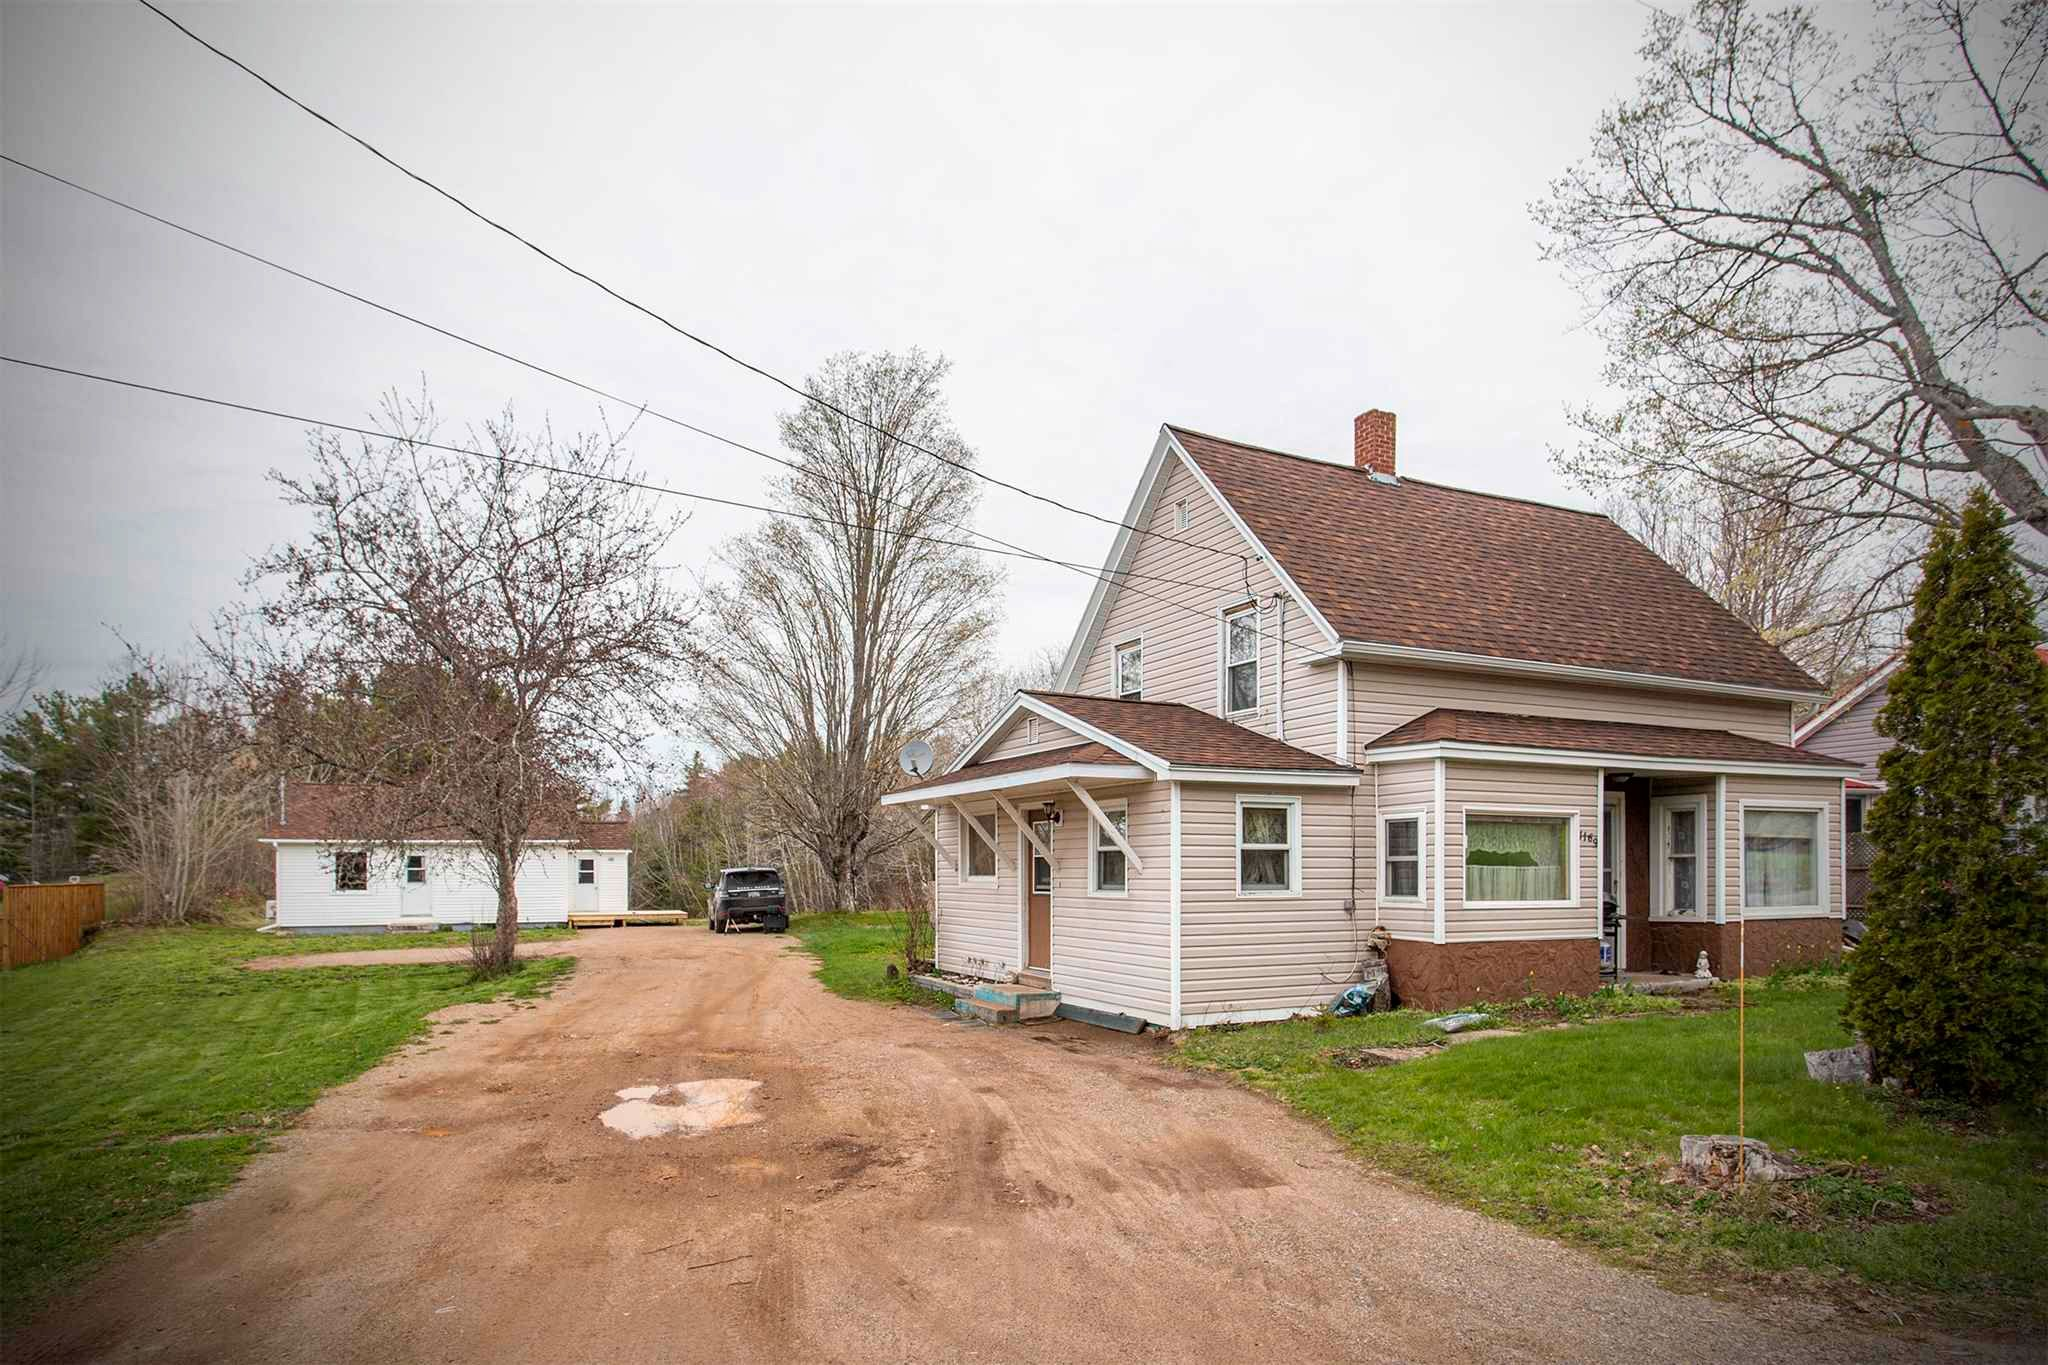 Main Photo: 1165-1169 Meadowvale Road in Tremont: 400-Annapolis County Residential for sale (Annapolis Valley)  : MLS®# 202110563